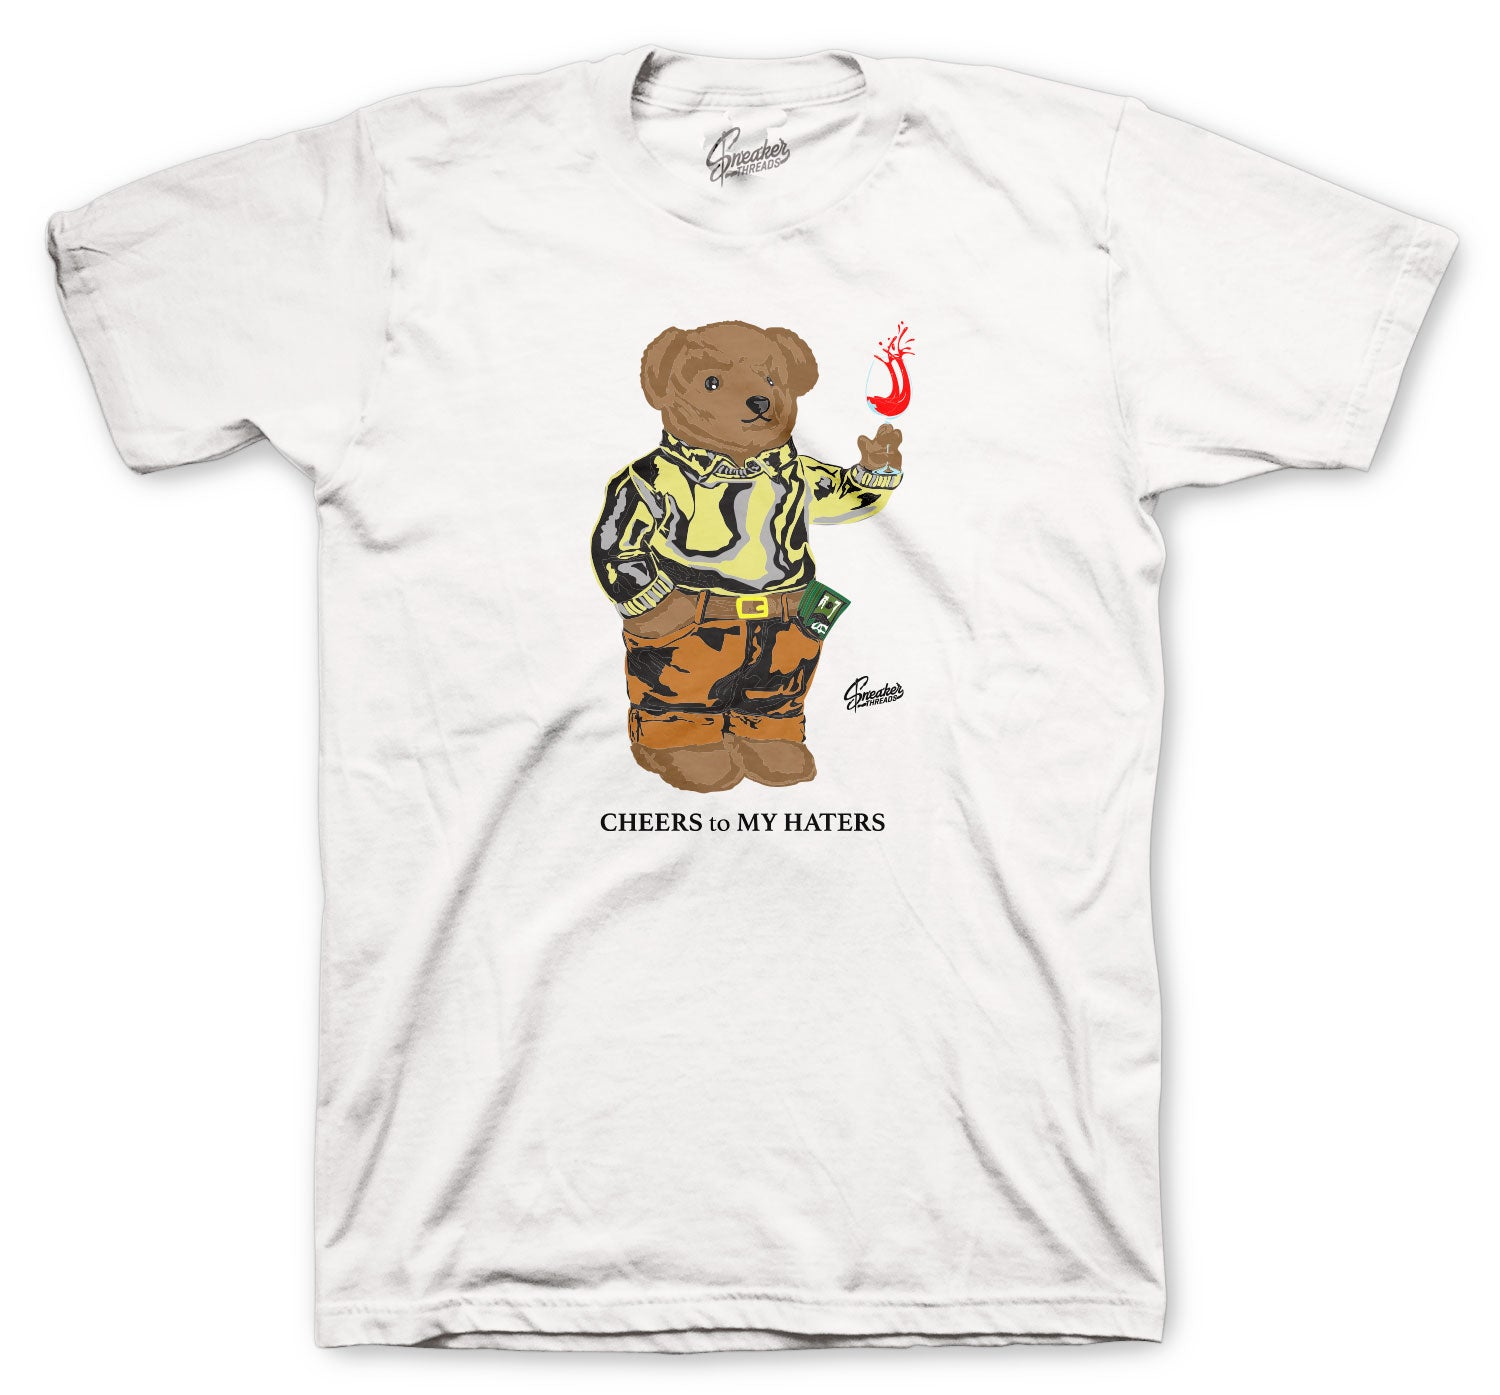 Yeezy Marsh Cheers Bear Shirts